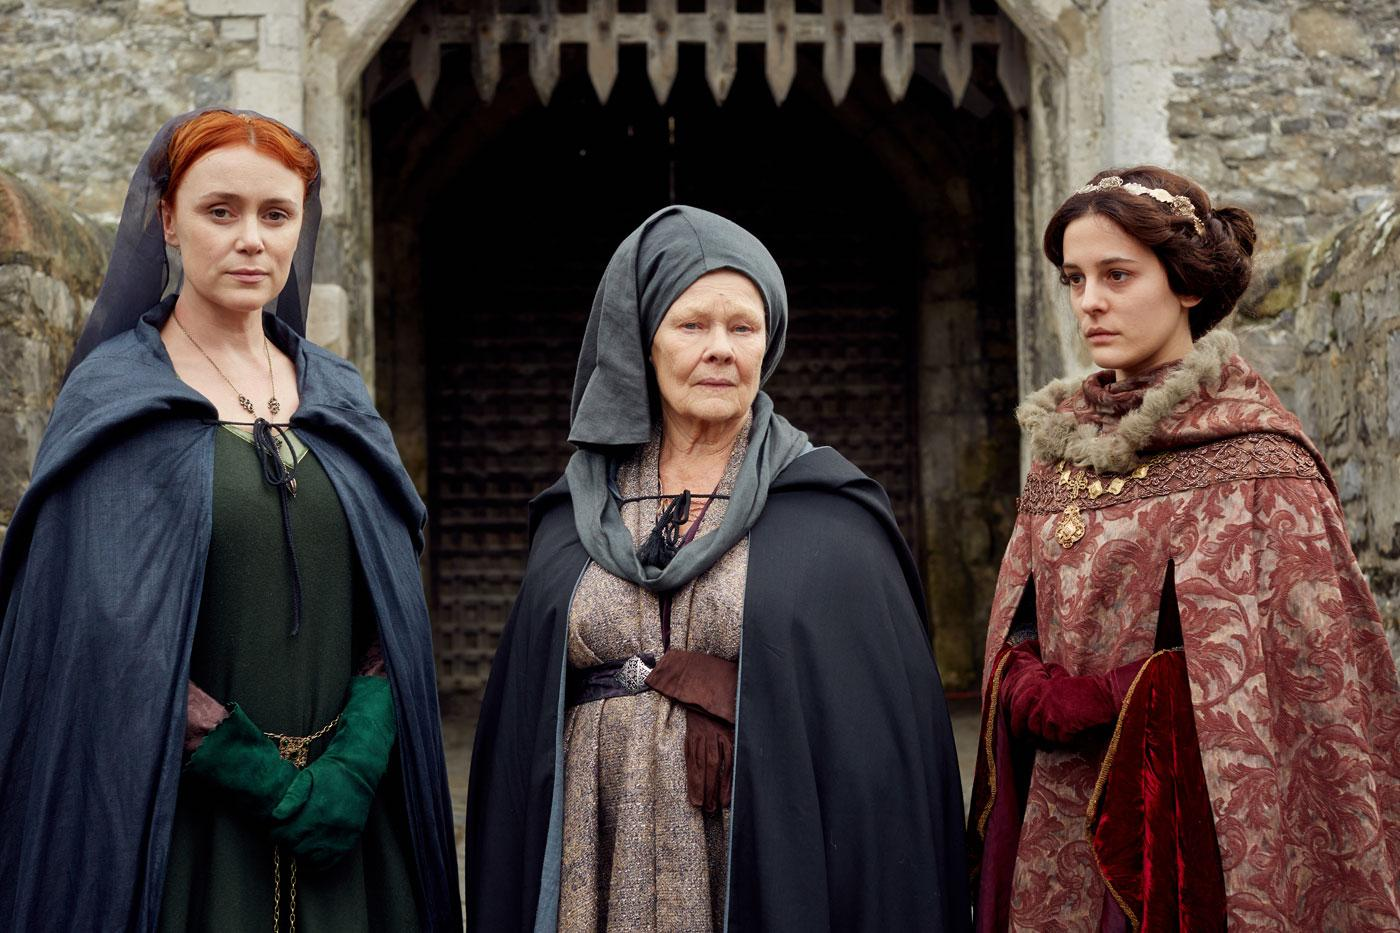 Keeley Hawes as Elizabeth Woodville, Judi Dench as Cecily, the Duchess of York, and Phoebe Fox as Anne Neville.